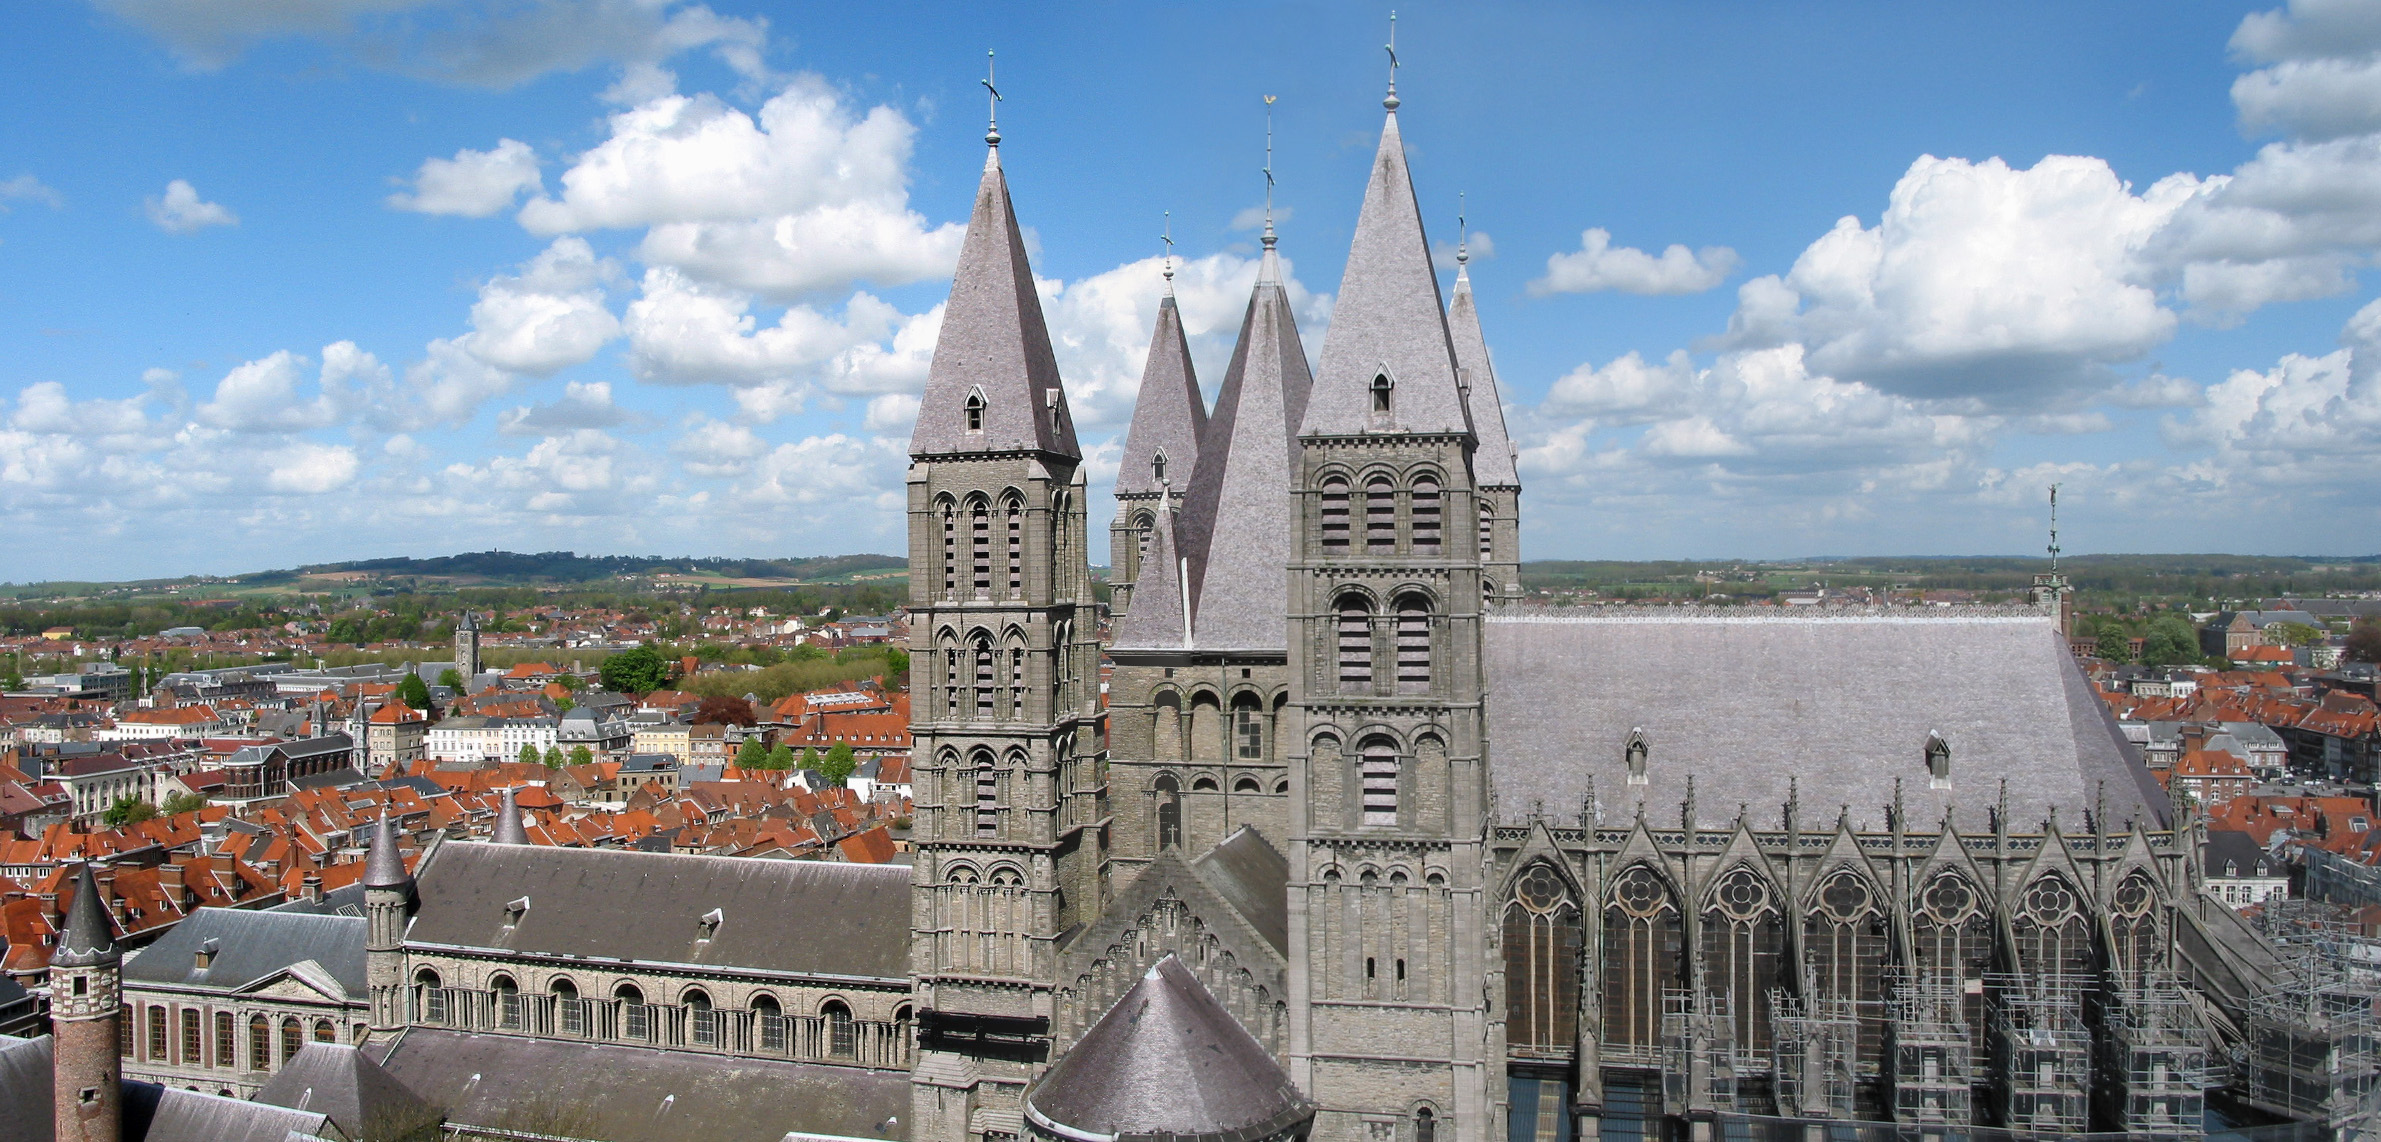 http://upload.wikimedia.org/wikipedia/commons/0/03/Tournai_pan.jpg